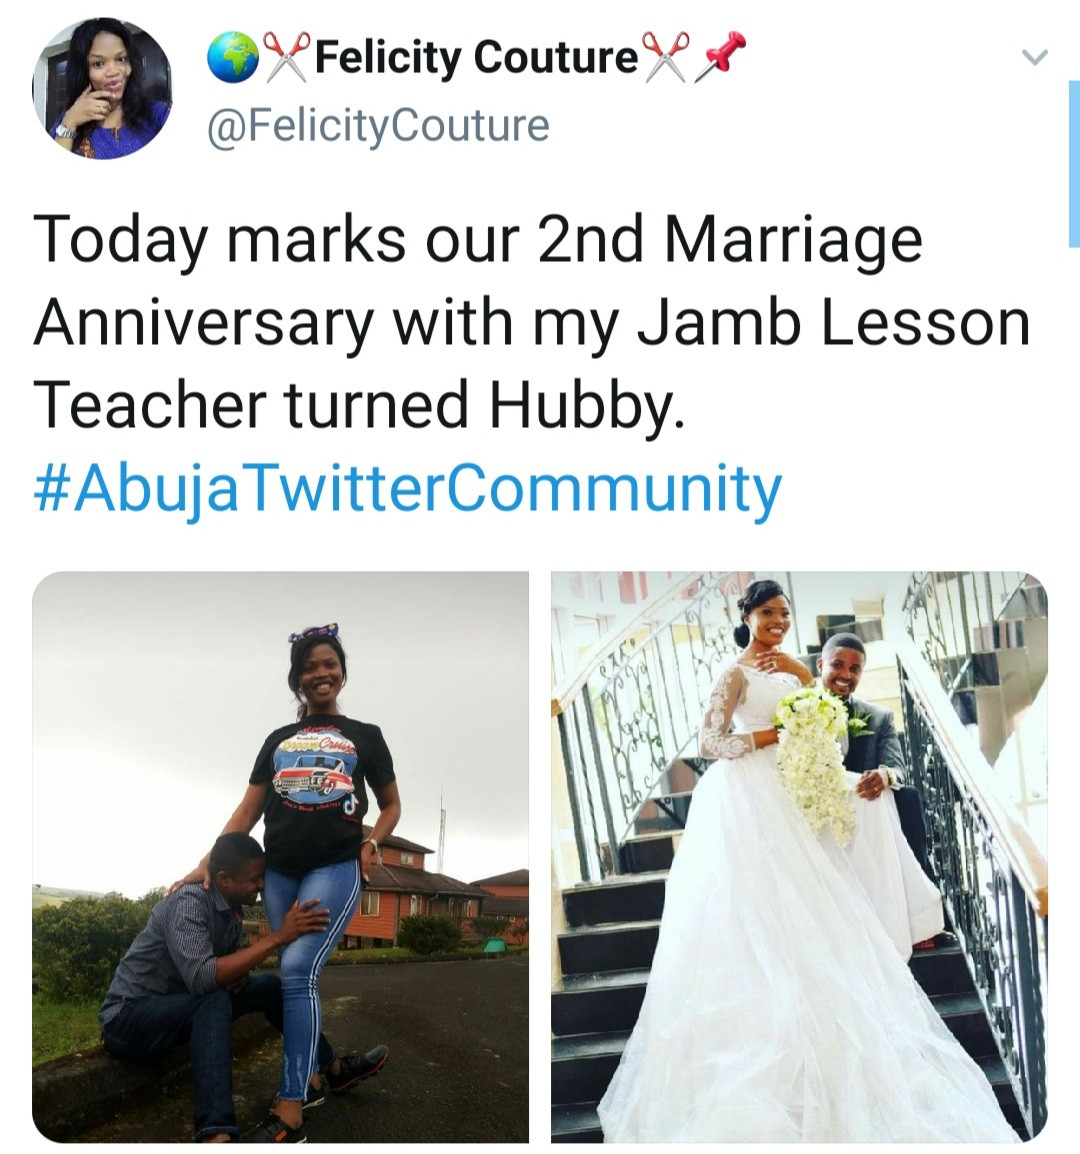 """61315858e0cb2 - """"JAMB lesson teacher turned hubby"""" Woman writes as she celebrates wedding anniversary with her former teacher"""